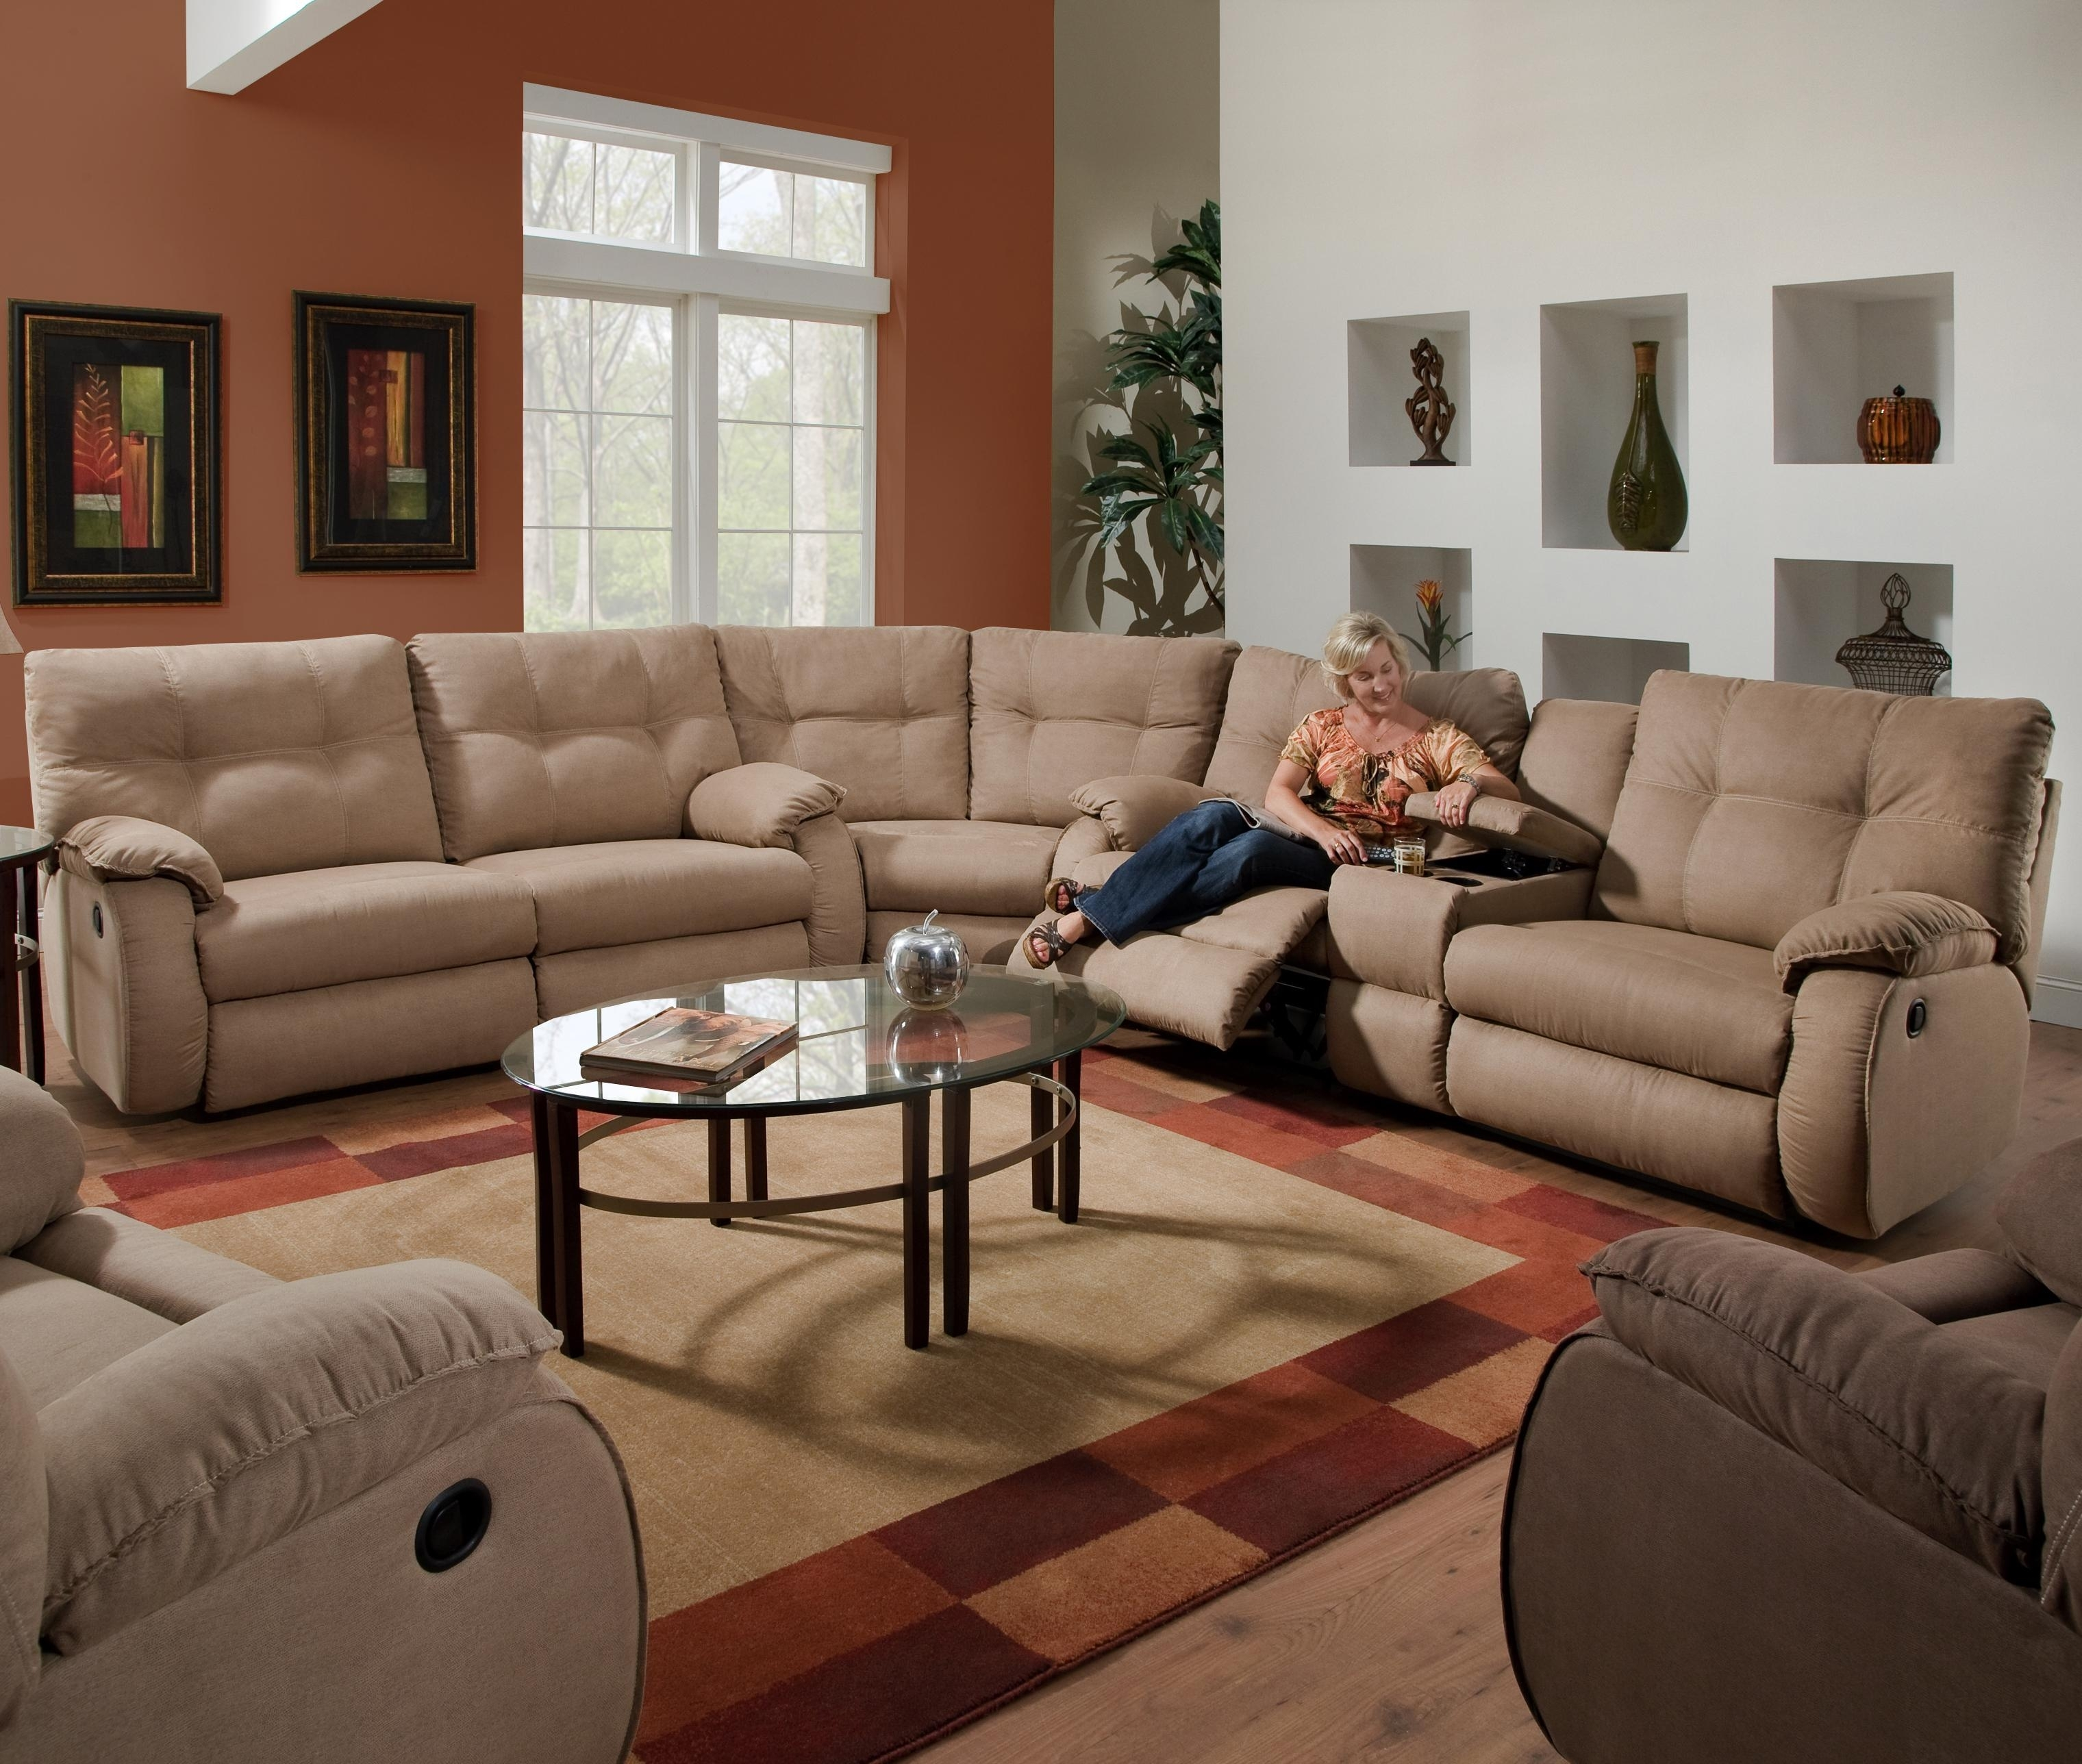 Sectional Sofas With Recliners Best 25 Reclining Ideas On Pinterest Within Sectional Sofas With Recliners For Small Spaces (View 7 of 10)